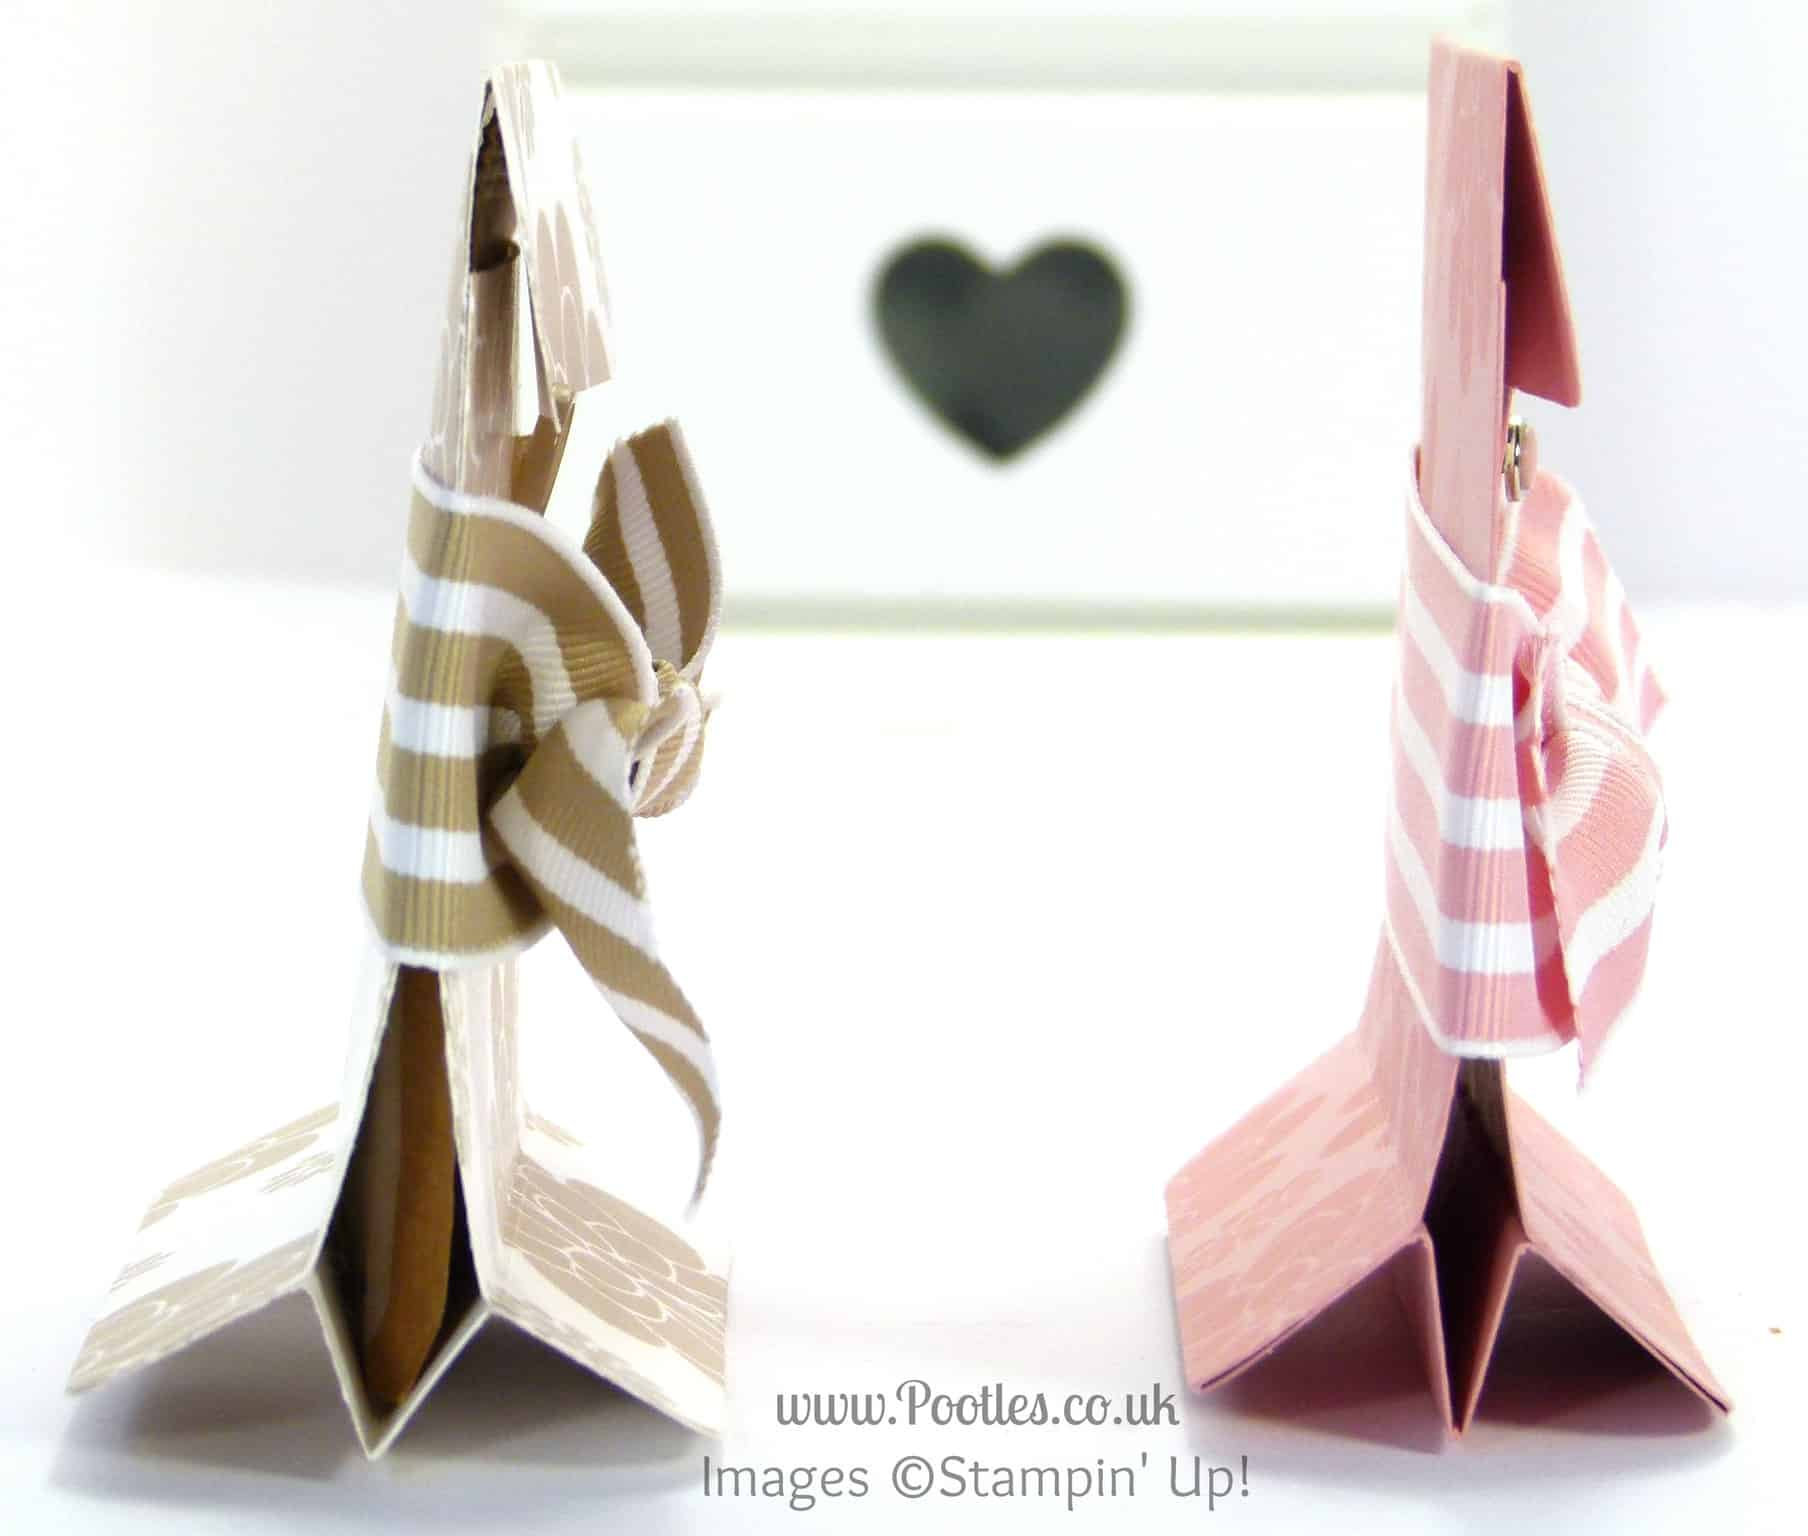 Stampin' Up! UK Demonstrator Pootles - Freestanding Tea Bag Holder Tutorial Side Profile